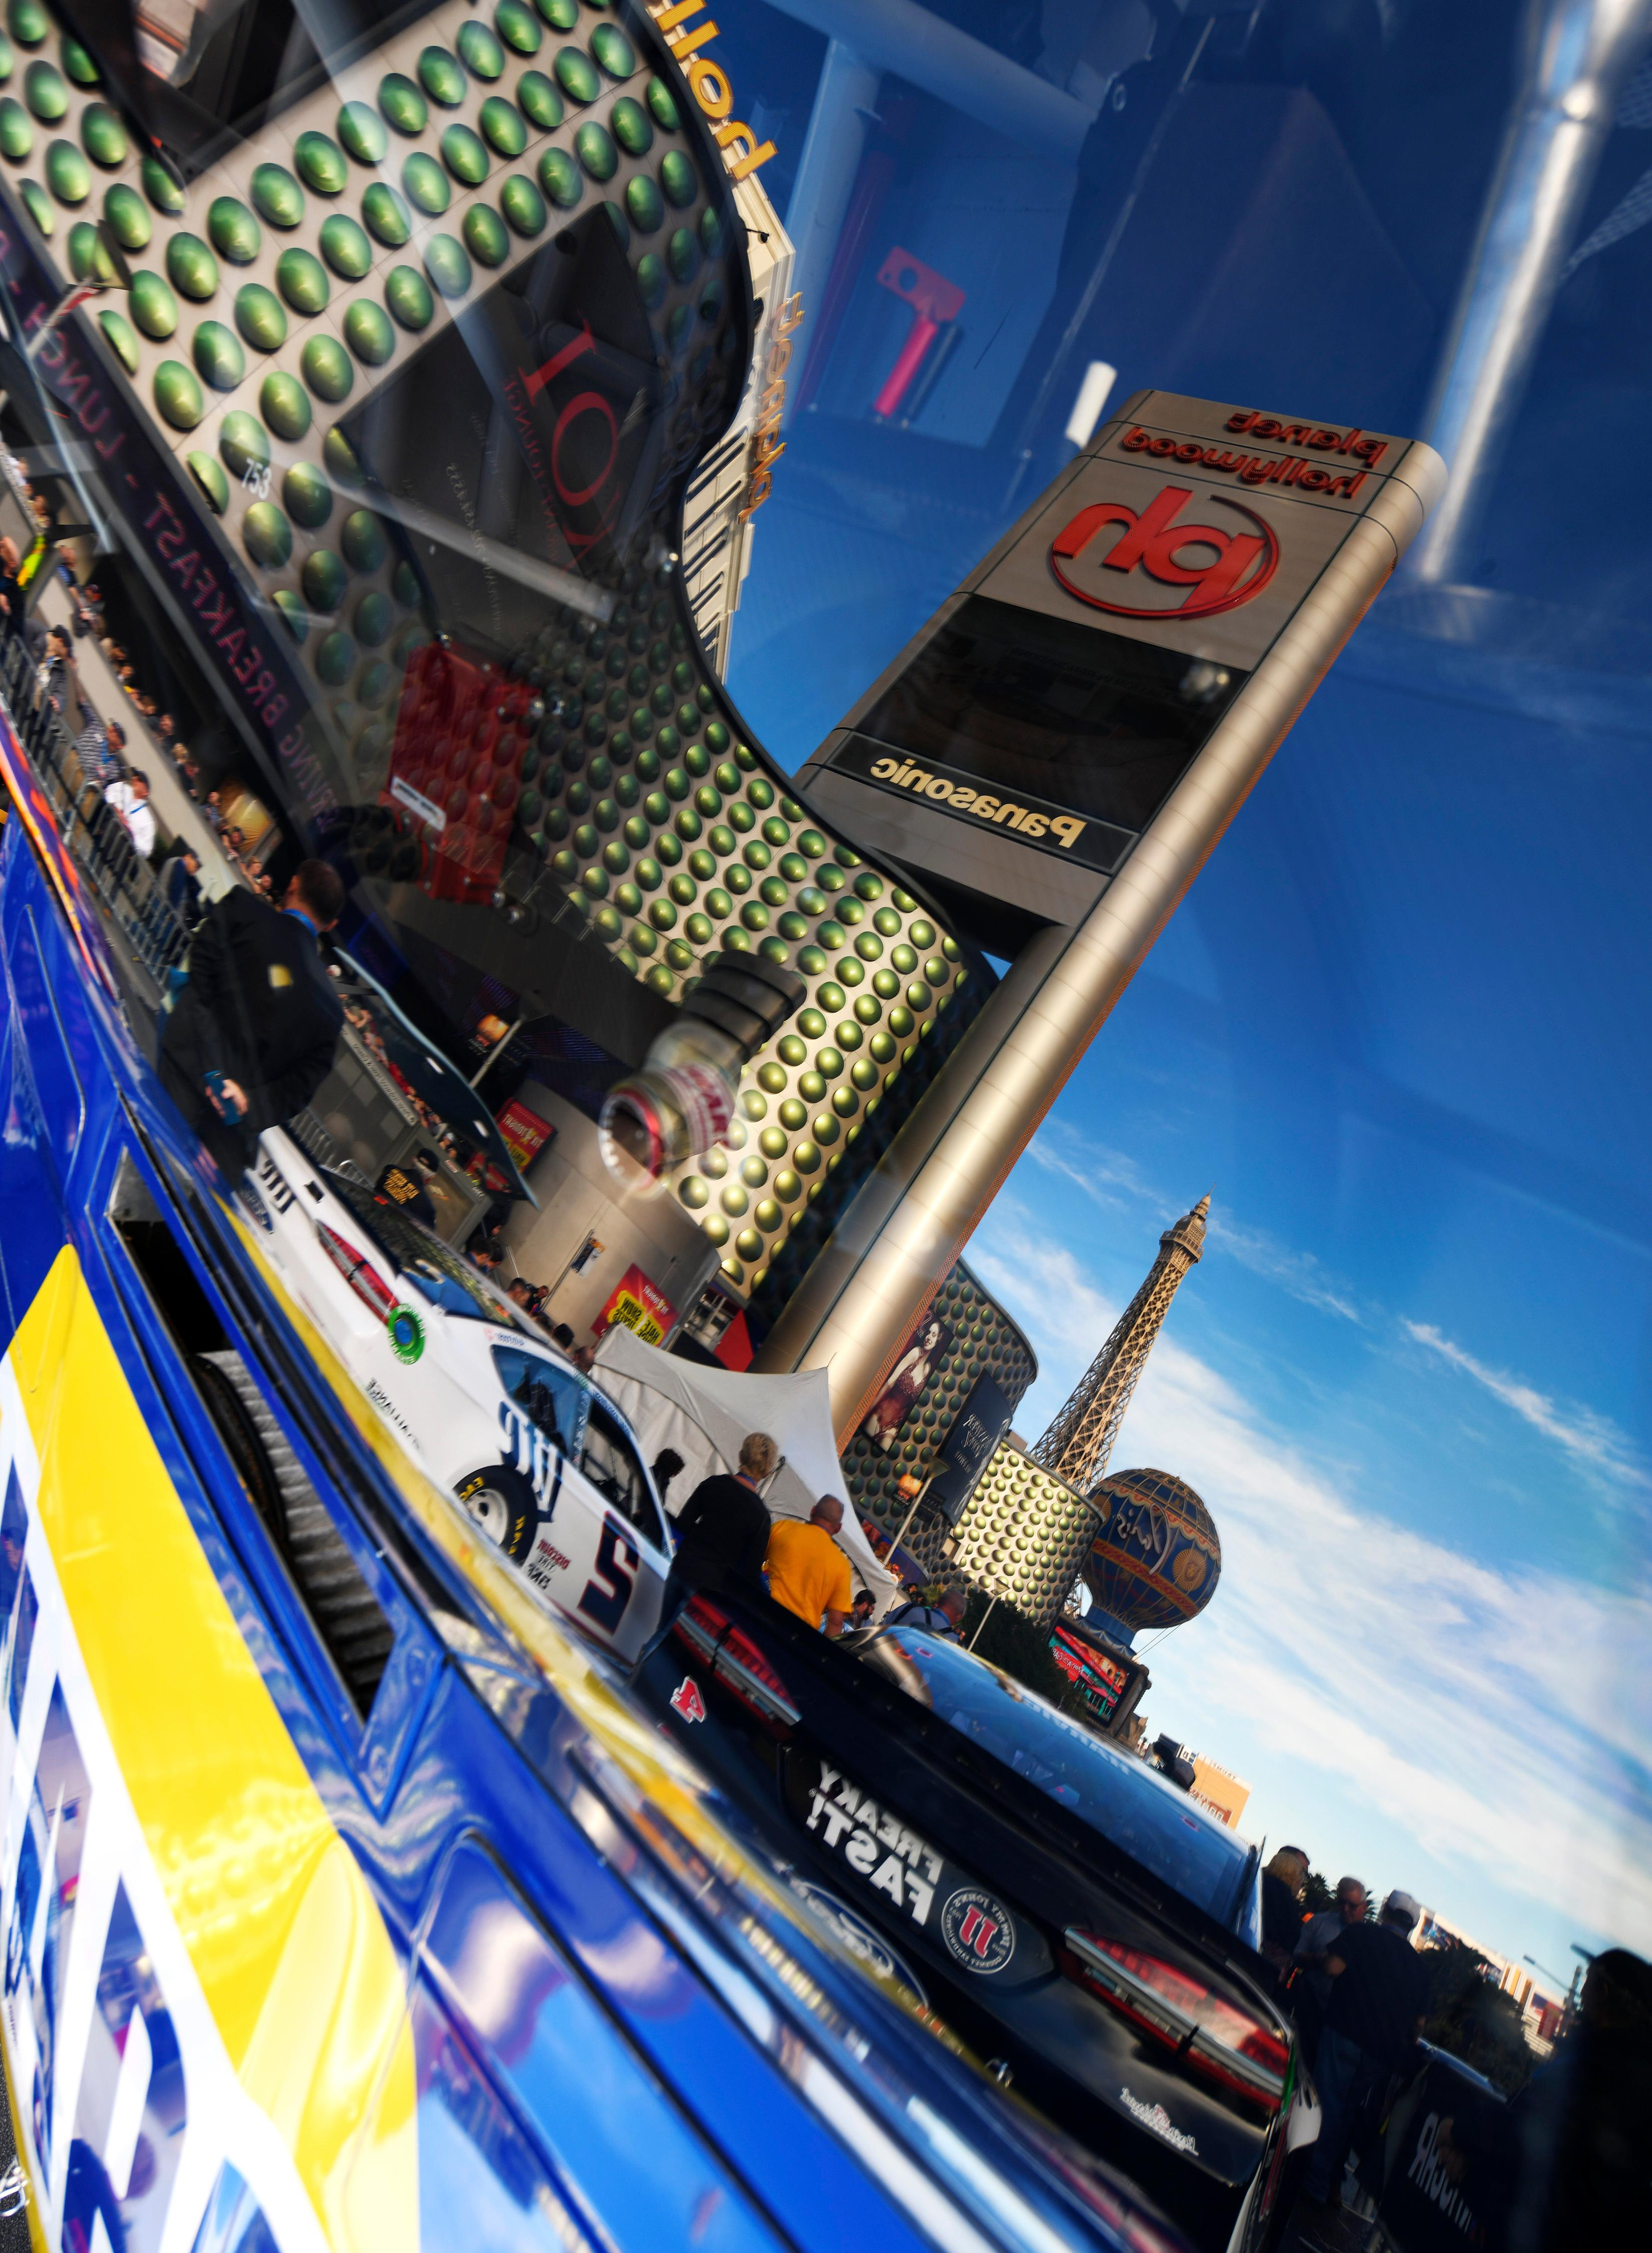 Marquees are reflected in the window of a stock car during the NASCAR Victory Lap on the Las Vegas Strip being held as part of Champions Week Wednesday, November 29, 2017. CREDIT: Sam Morris/Las Vegas News Bureau